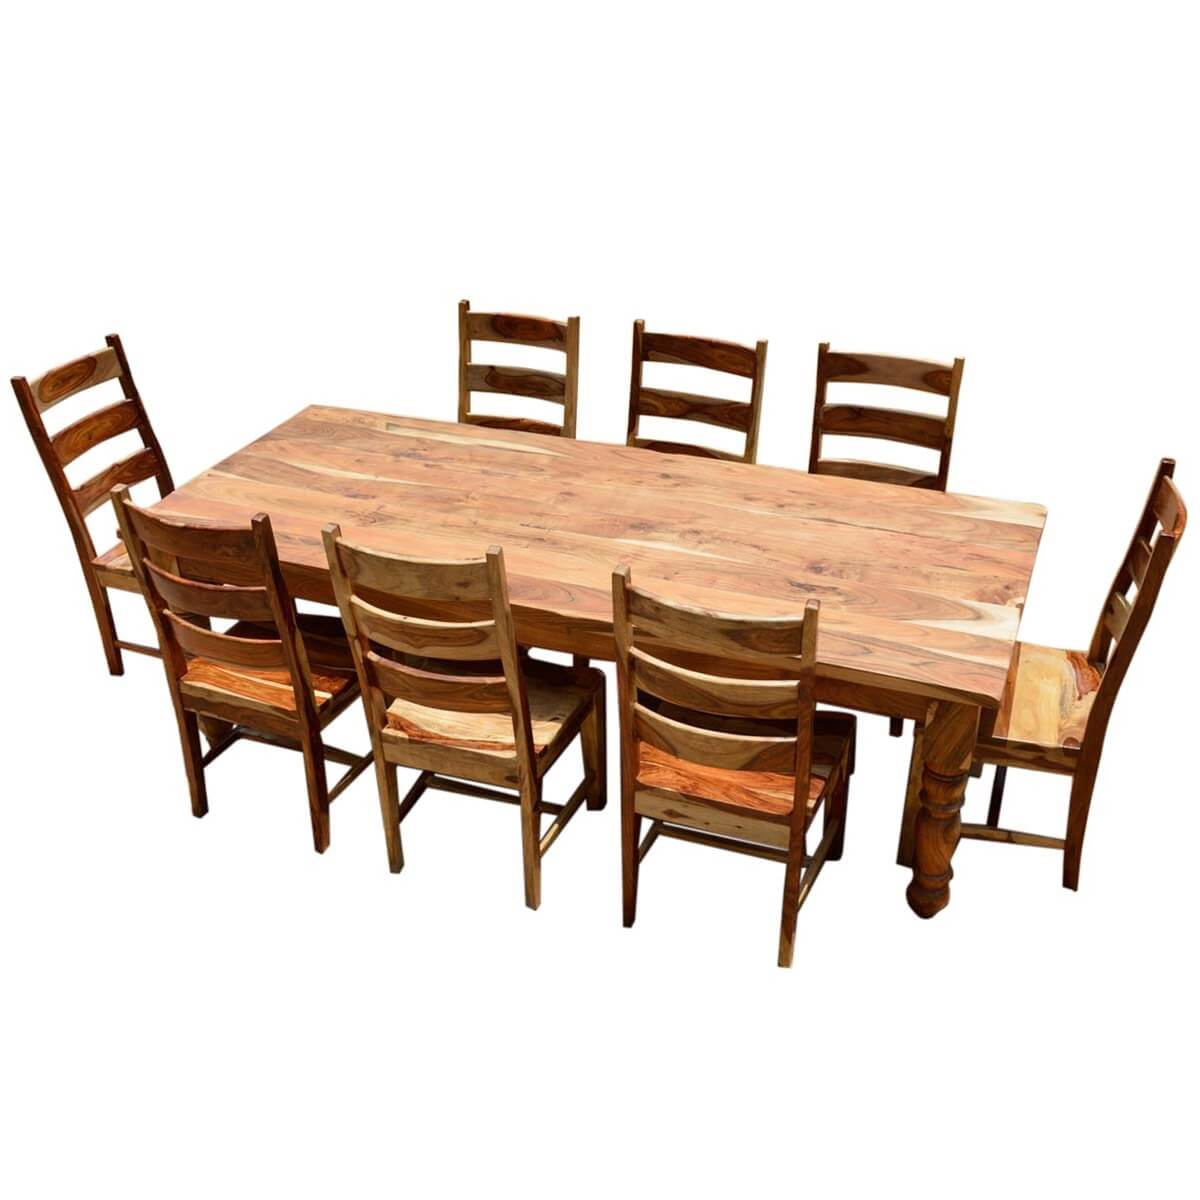 Rustic Dining Room Table Sets: Rustic Solid Wood Farmhouse Dining Room Table Chair Set